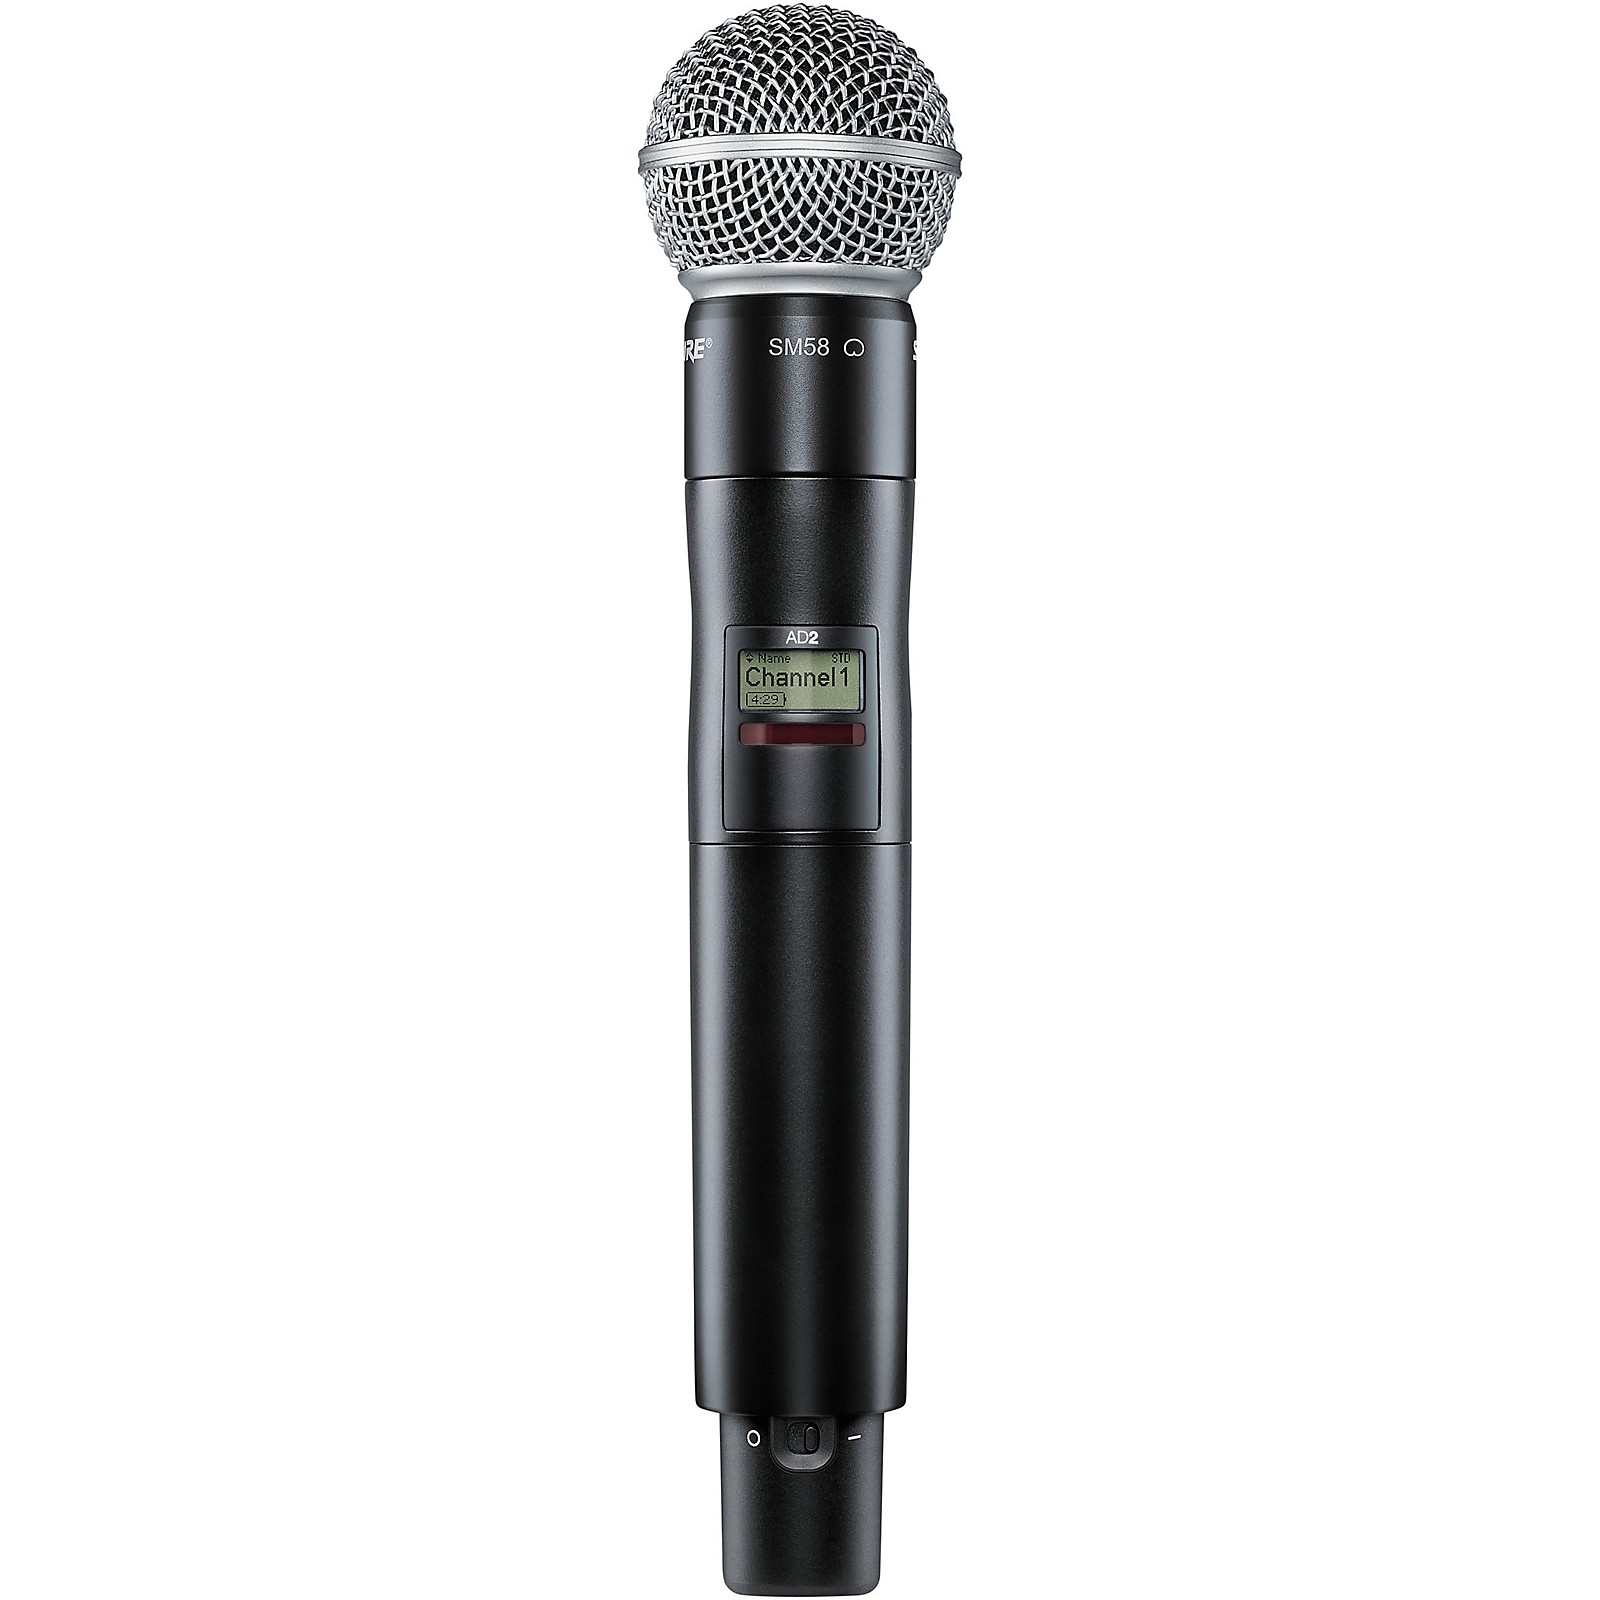 Shure Axient Digital AD2/SM58 Handheld Wireless Transmitter with SM58 Microphone